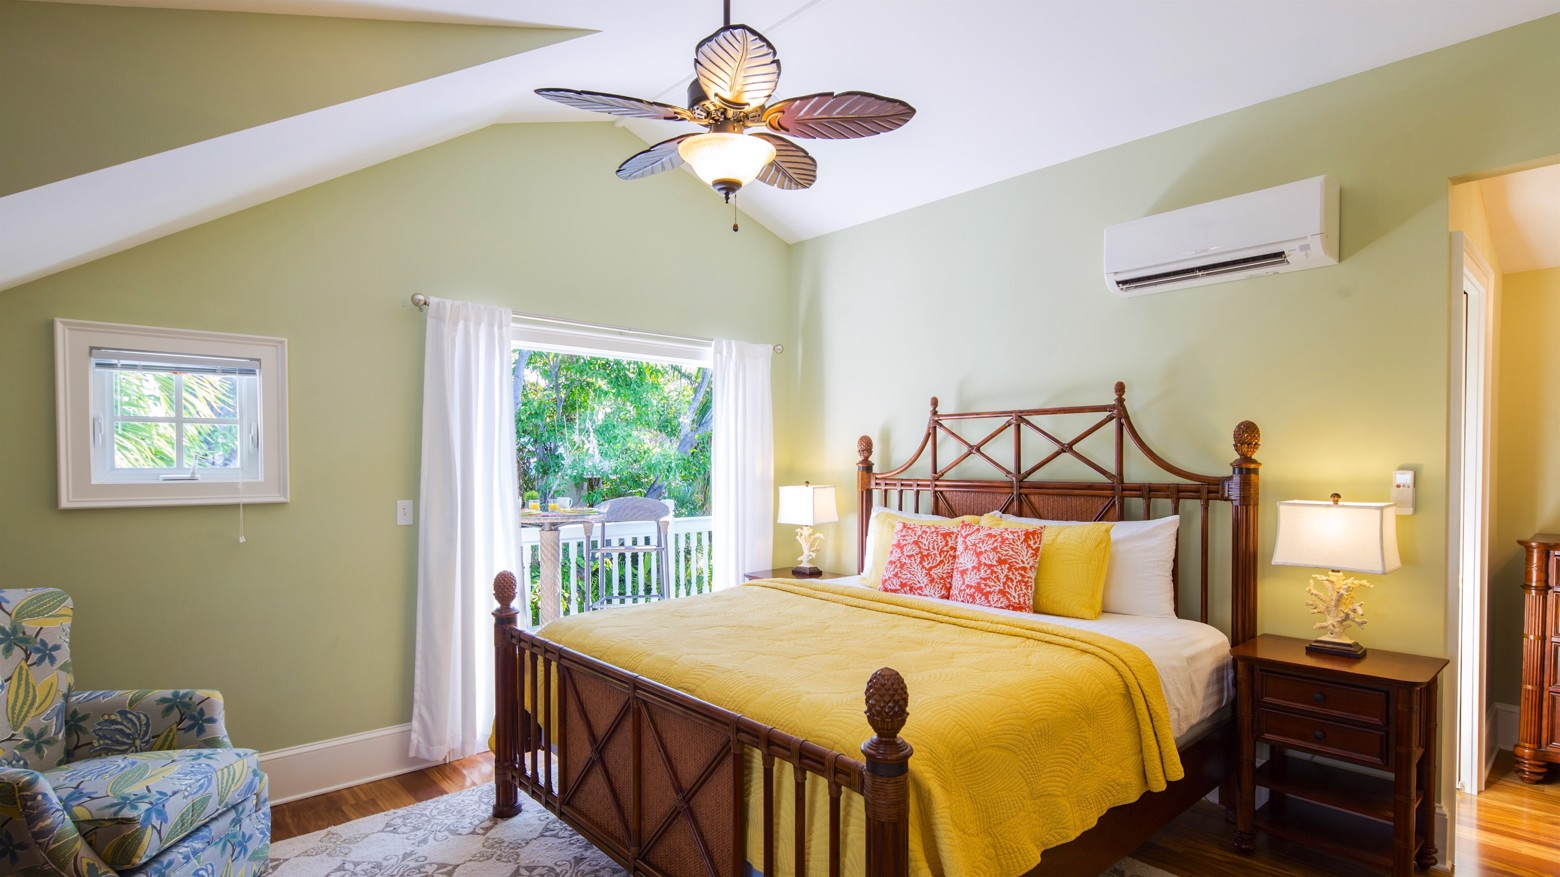 27-733LOVELANE-16x9-upstairsmasterbedroombalcony.jpg image